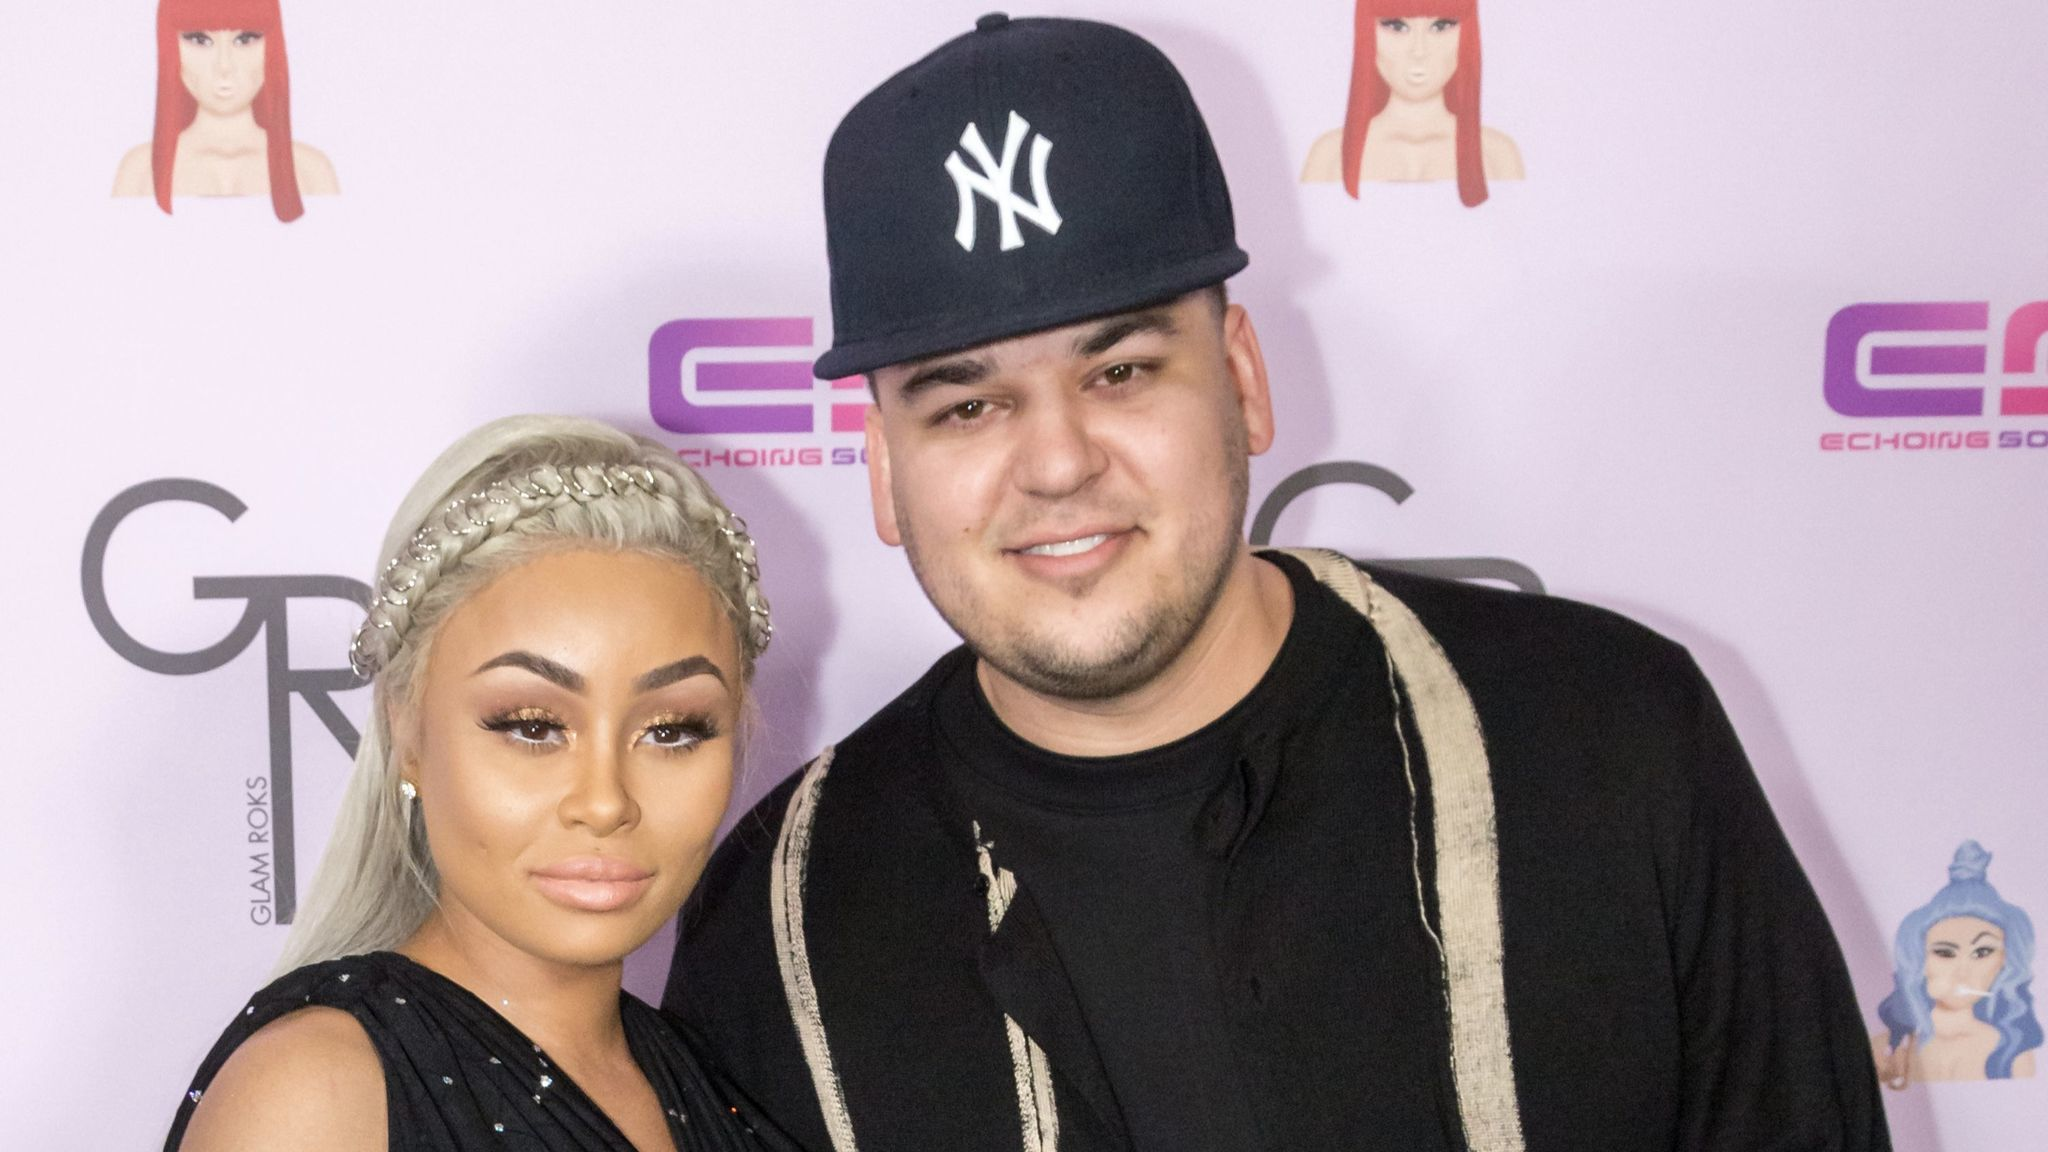 Rob Kardashian posts sexually explicit images supposedly of Blac Chyna on  social media fdffb09c9290